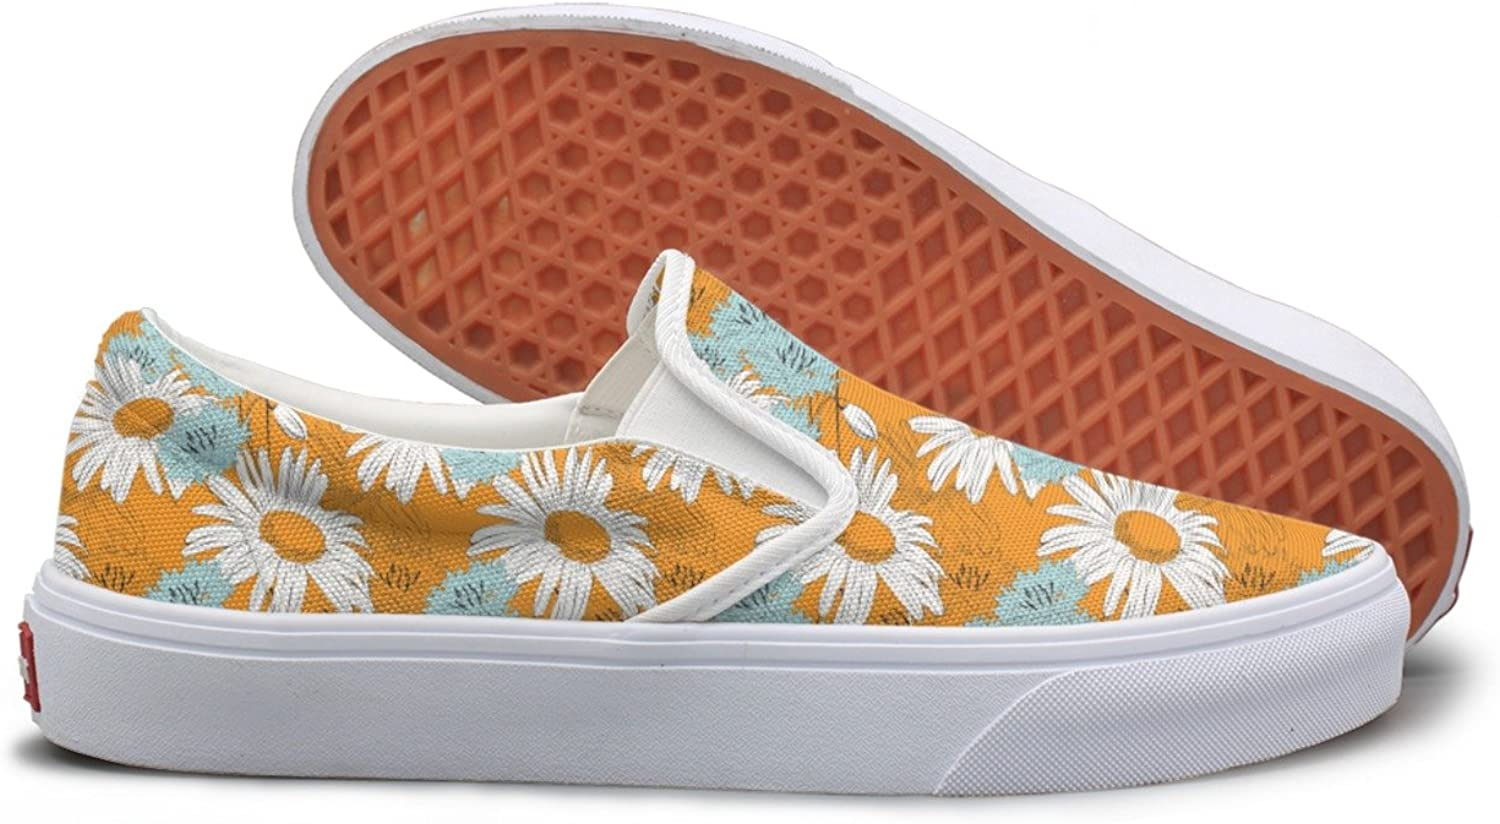 SEERTED African Daisy Plant School Sneakers for Girls